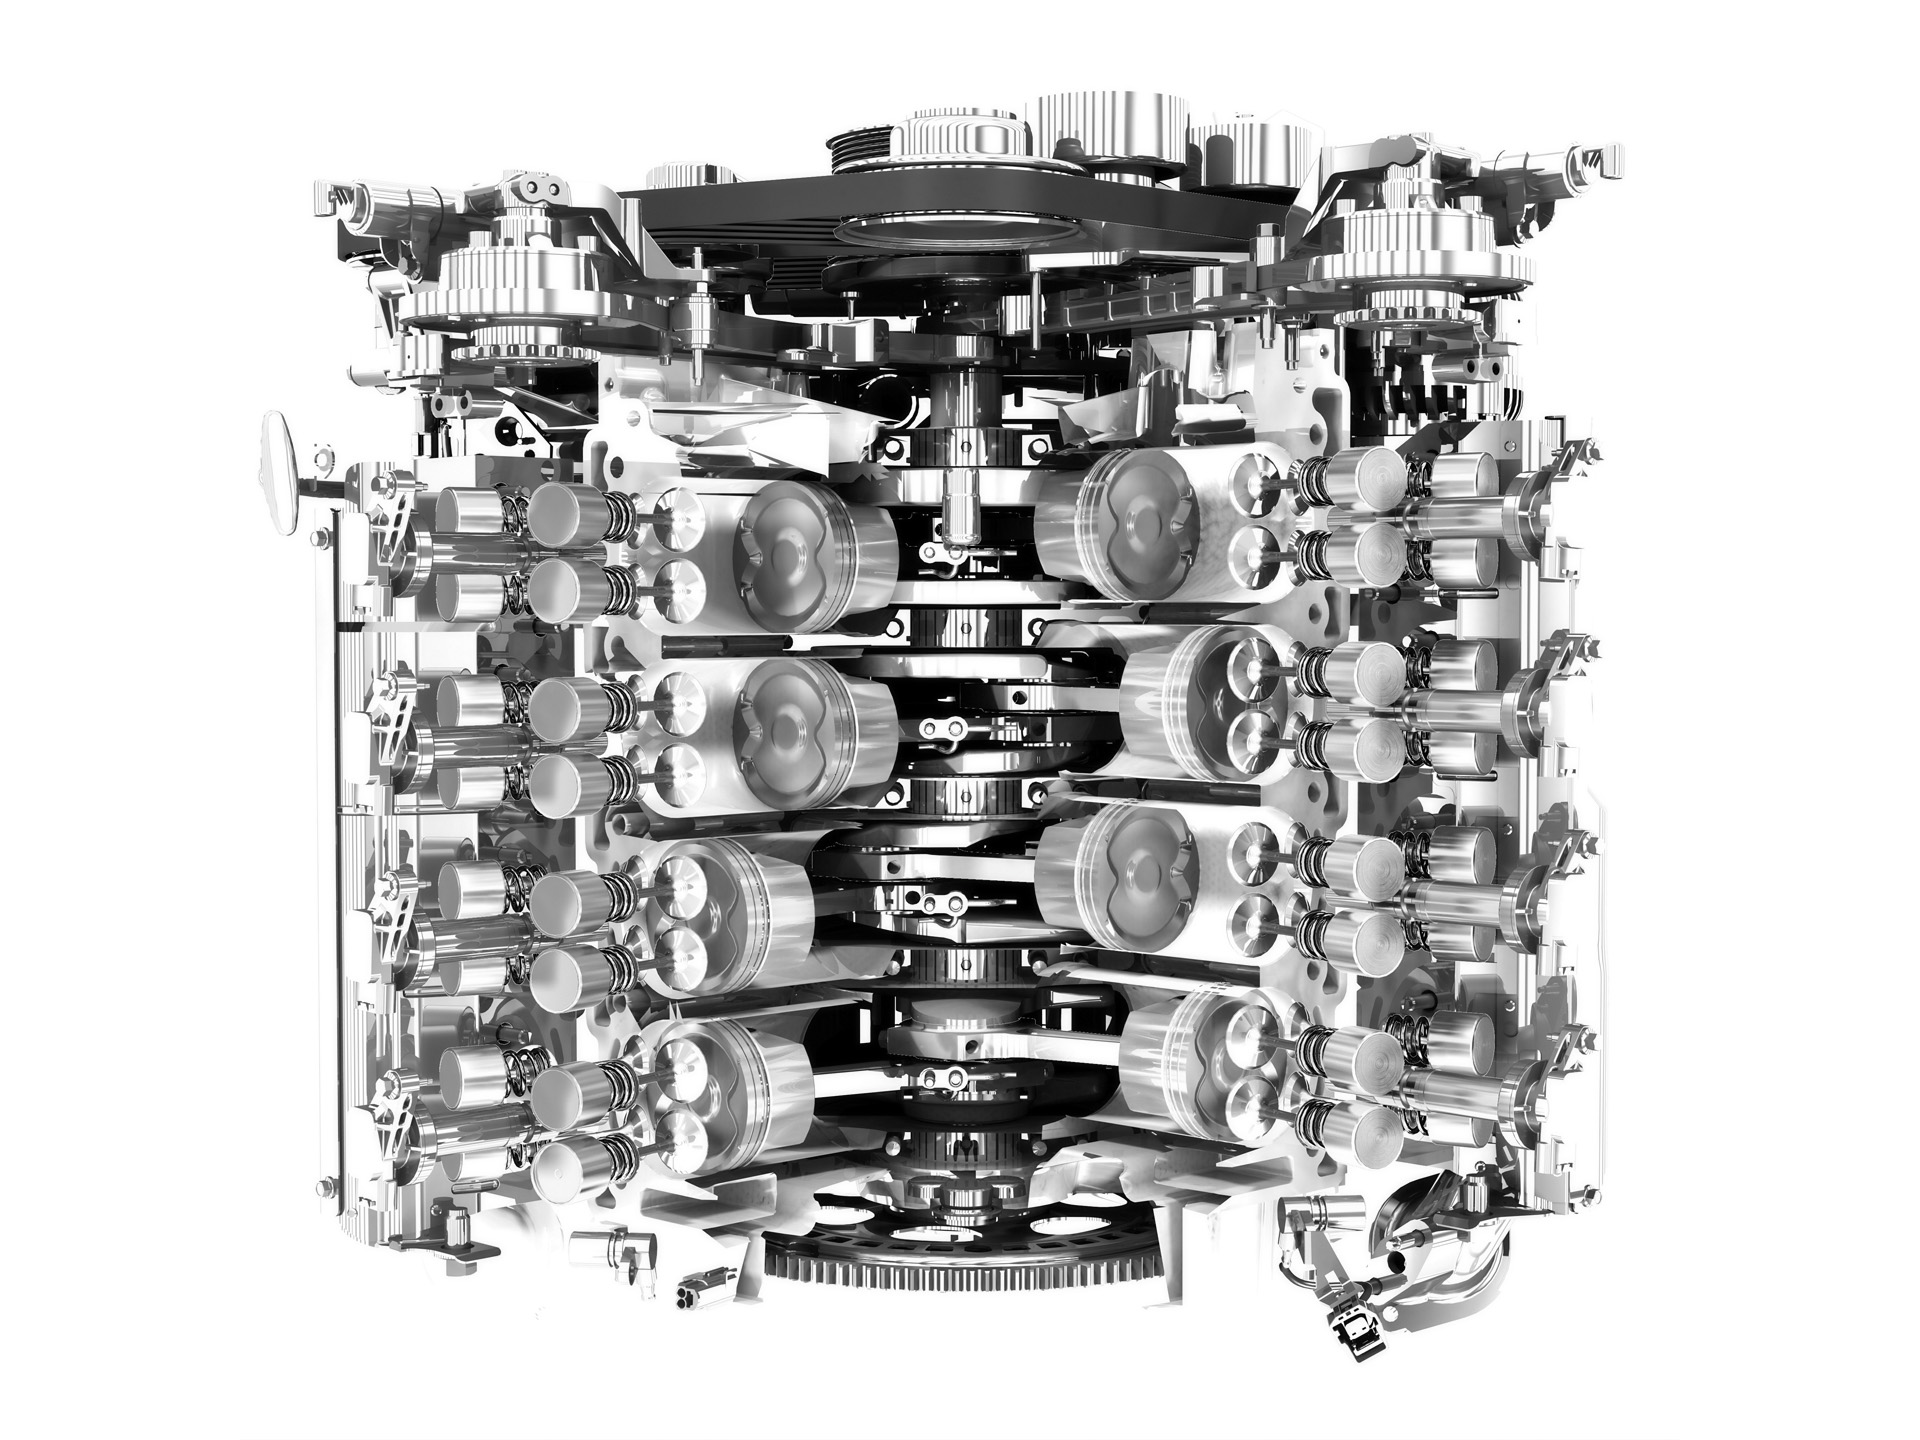 Sample C1416 Engine